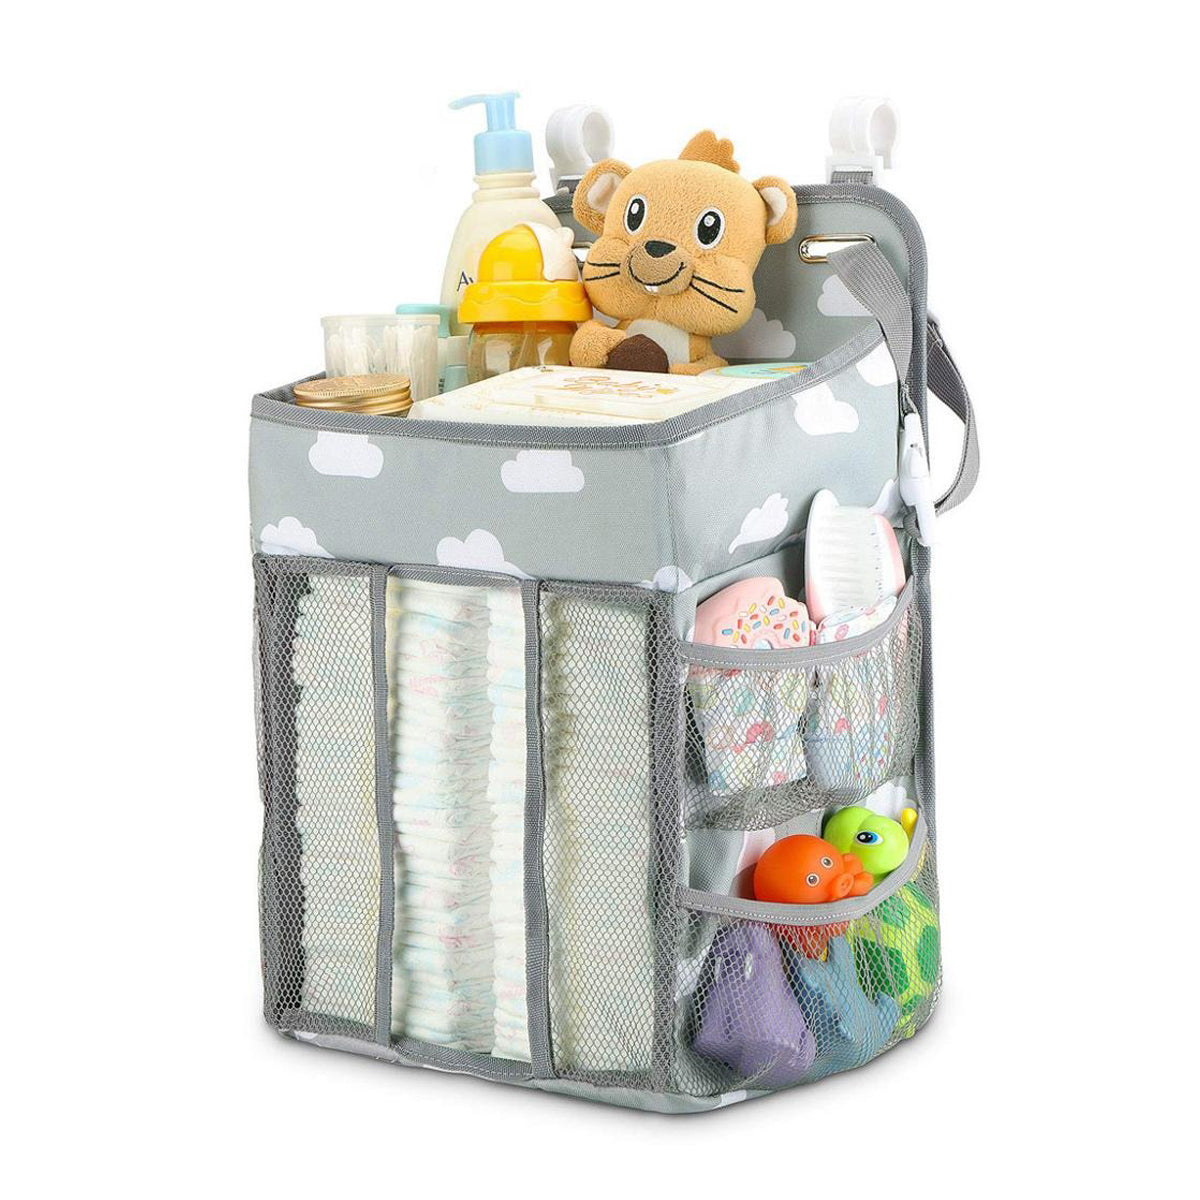 Baby Zone Bed Storage Organizer